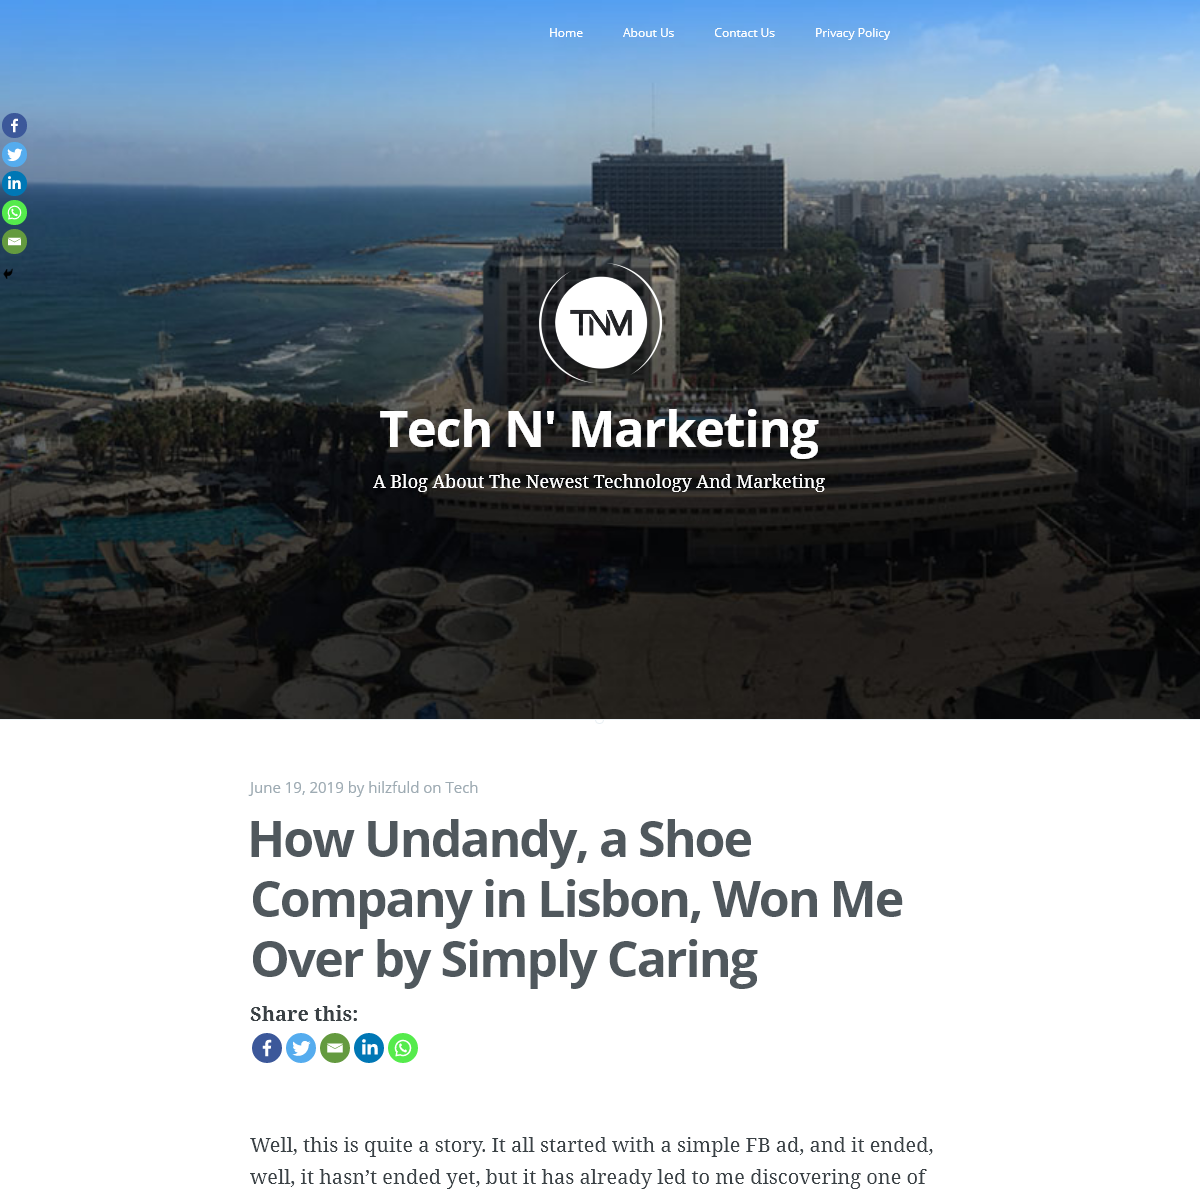 Tech N` Marketing - A Blog About The Newest Technology And Marketing